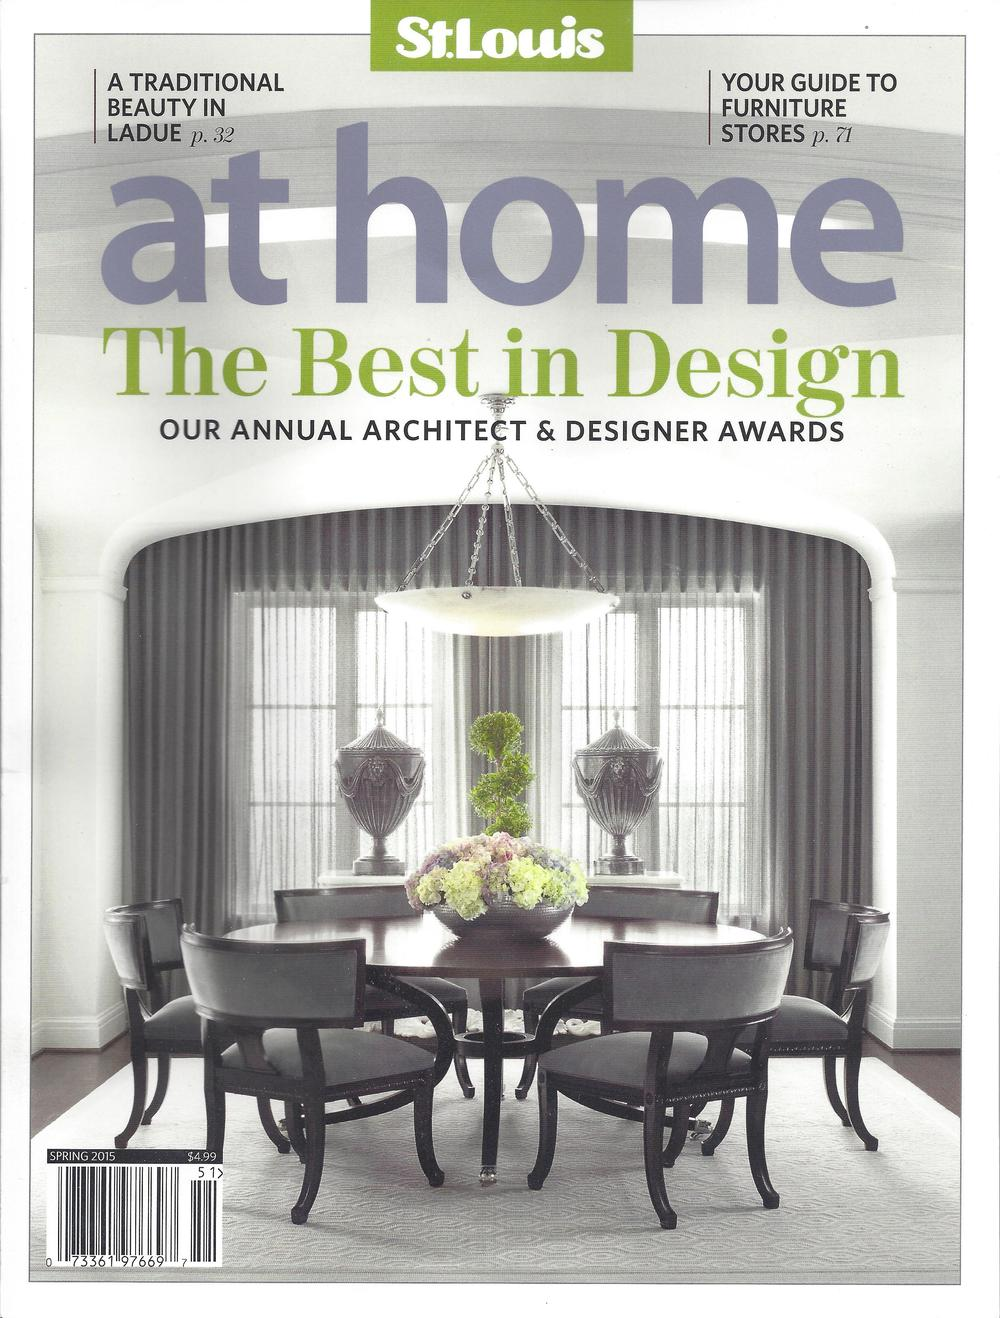 Spring 2015 Architect & Design Award - Children's Room Designer: Joni Spear Interior Design